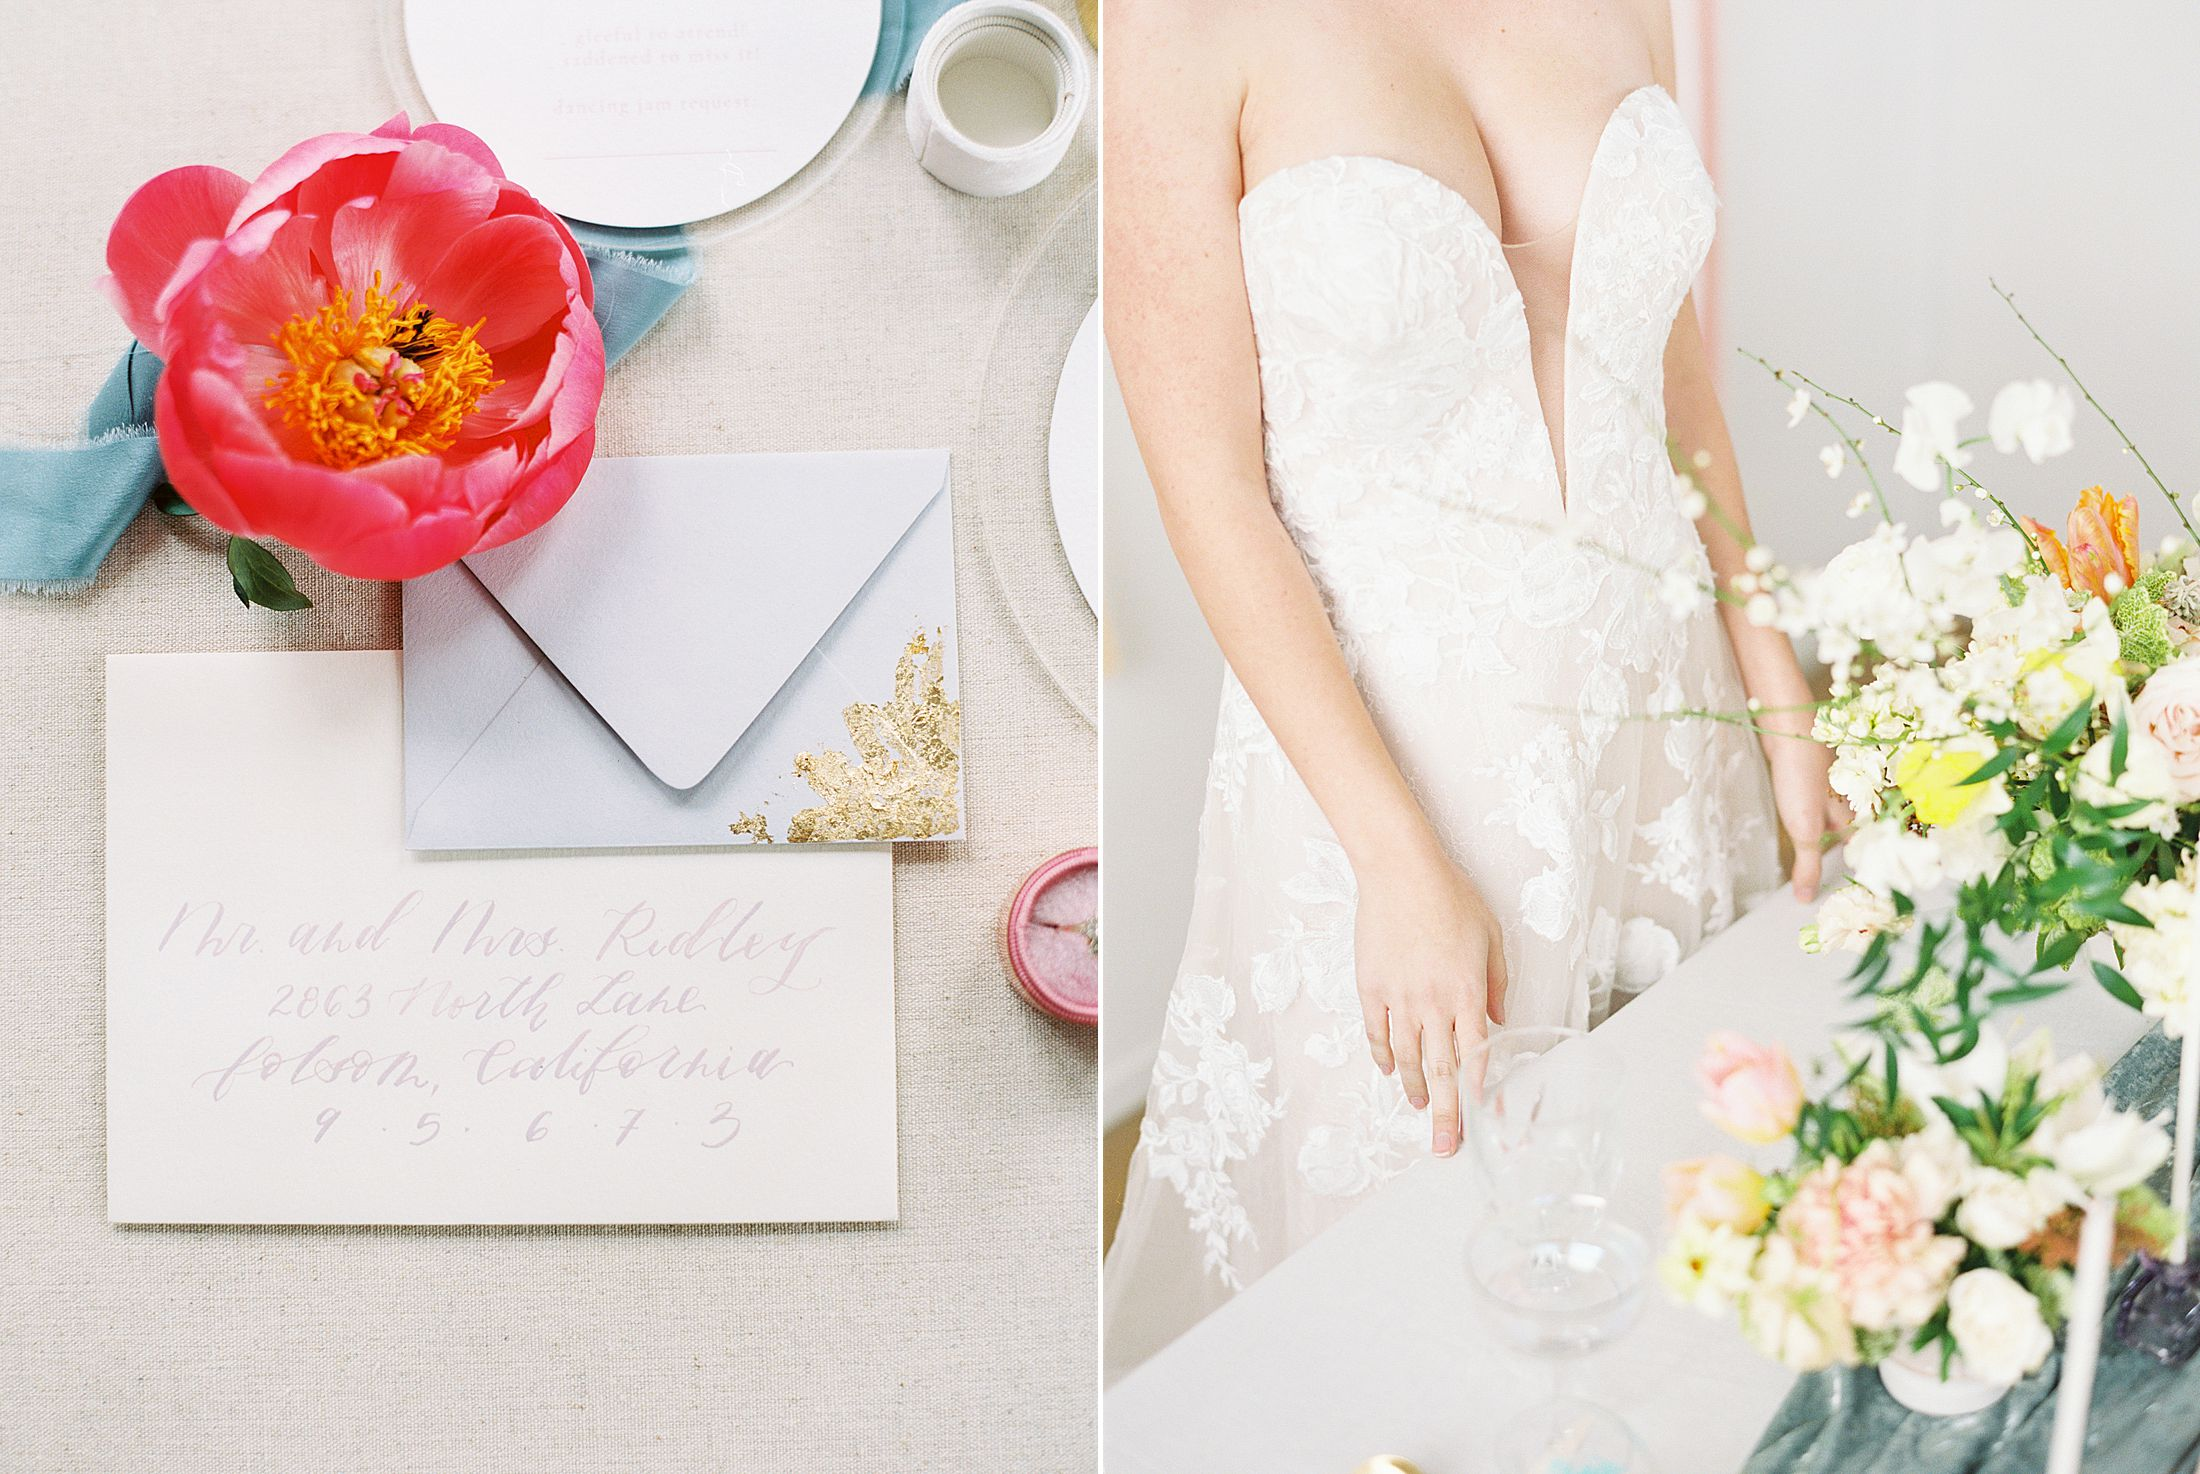 Bay Area Spring Wedding Inspiration - Ashley Baumgartner - Inspired By This - Party Crush Studio and Lens of Lenox Videography - Bay Area Wedding Photography_0017.jpg